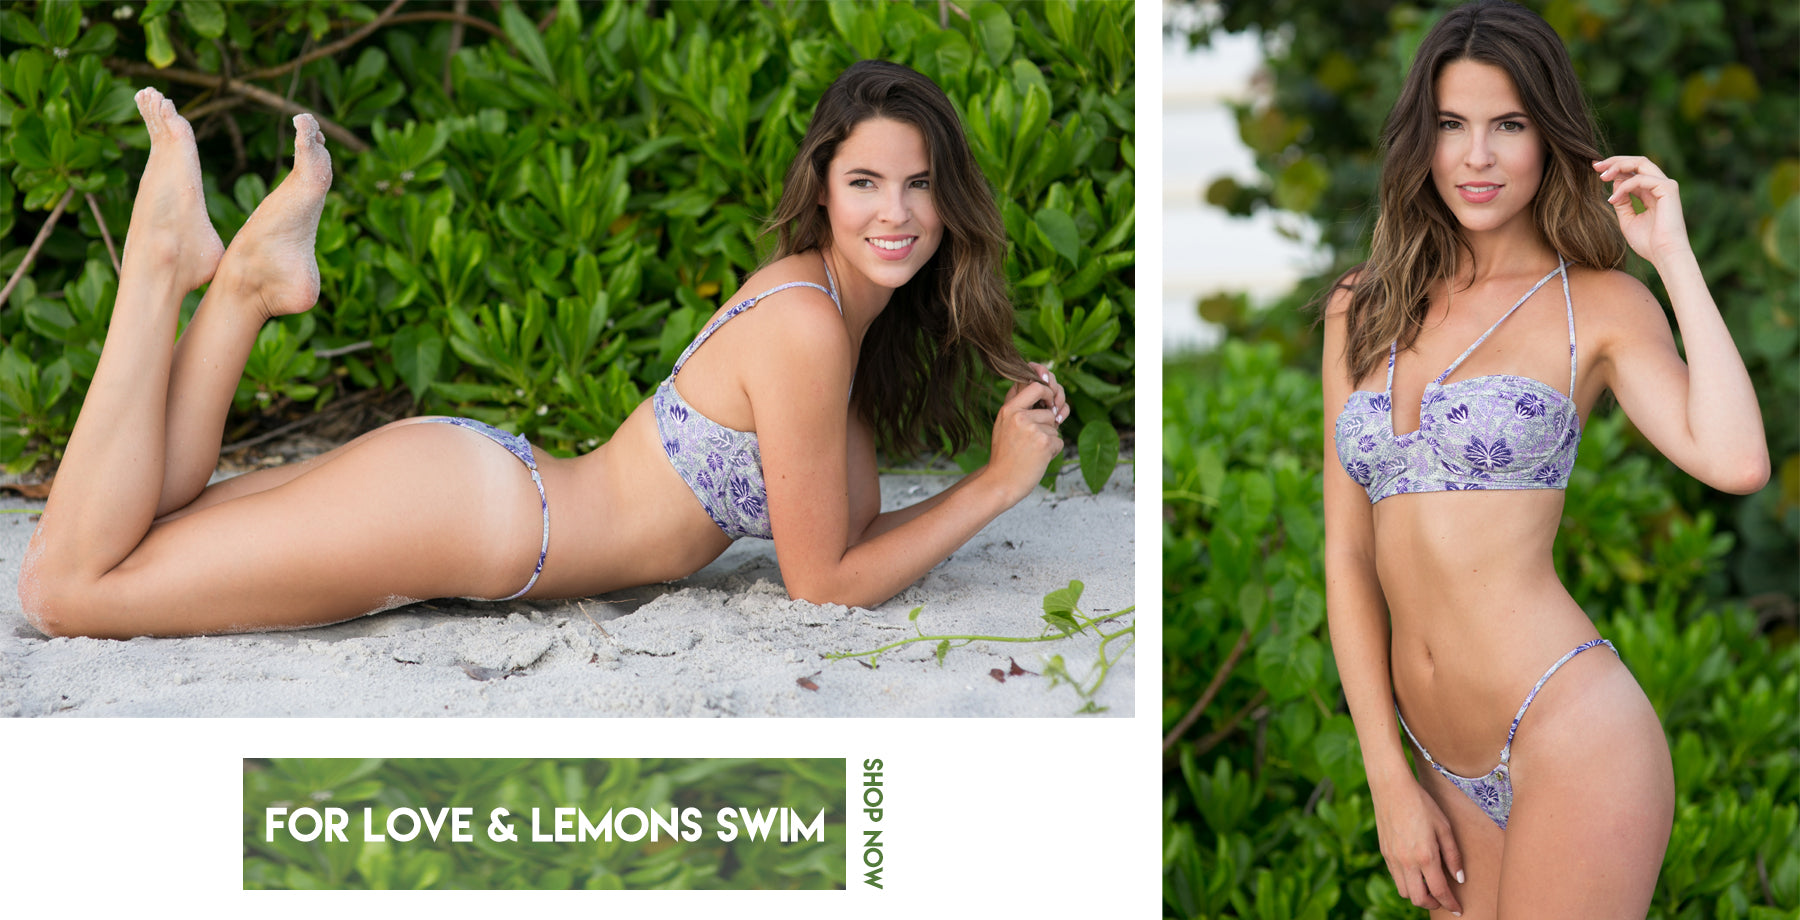 For Love & Lemons Swim